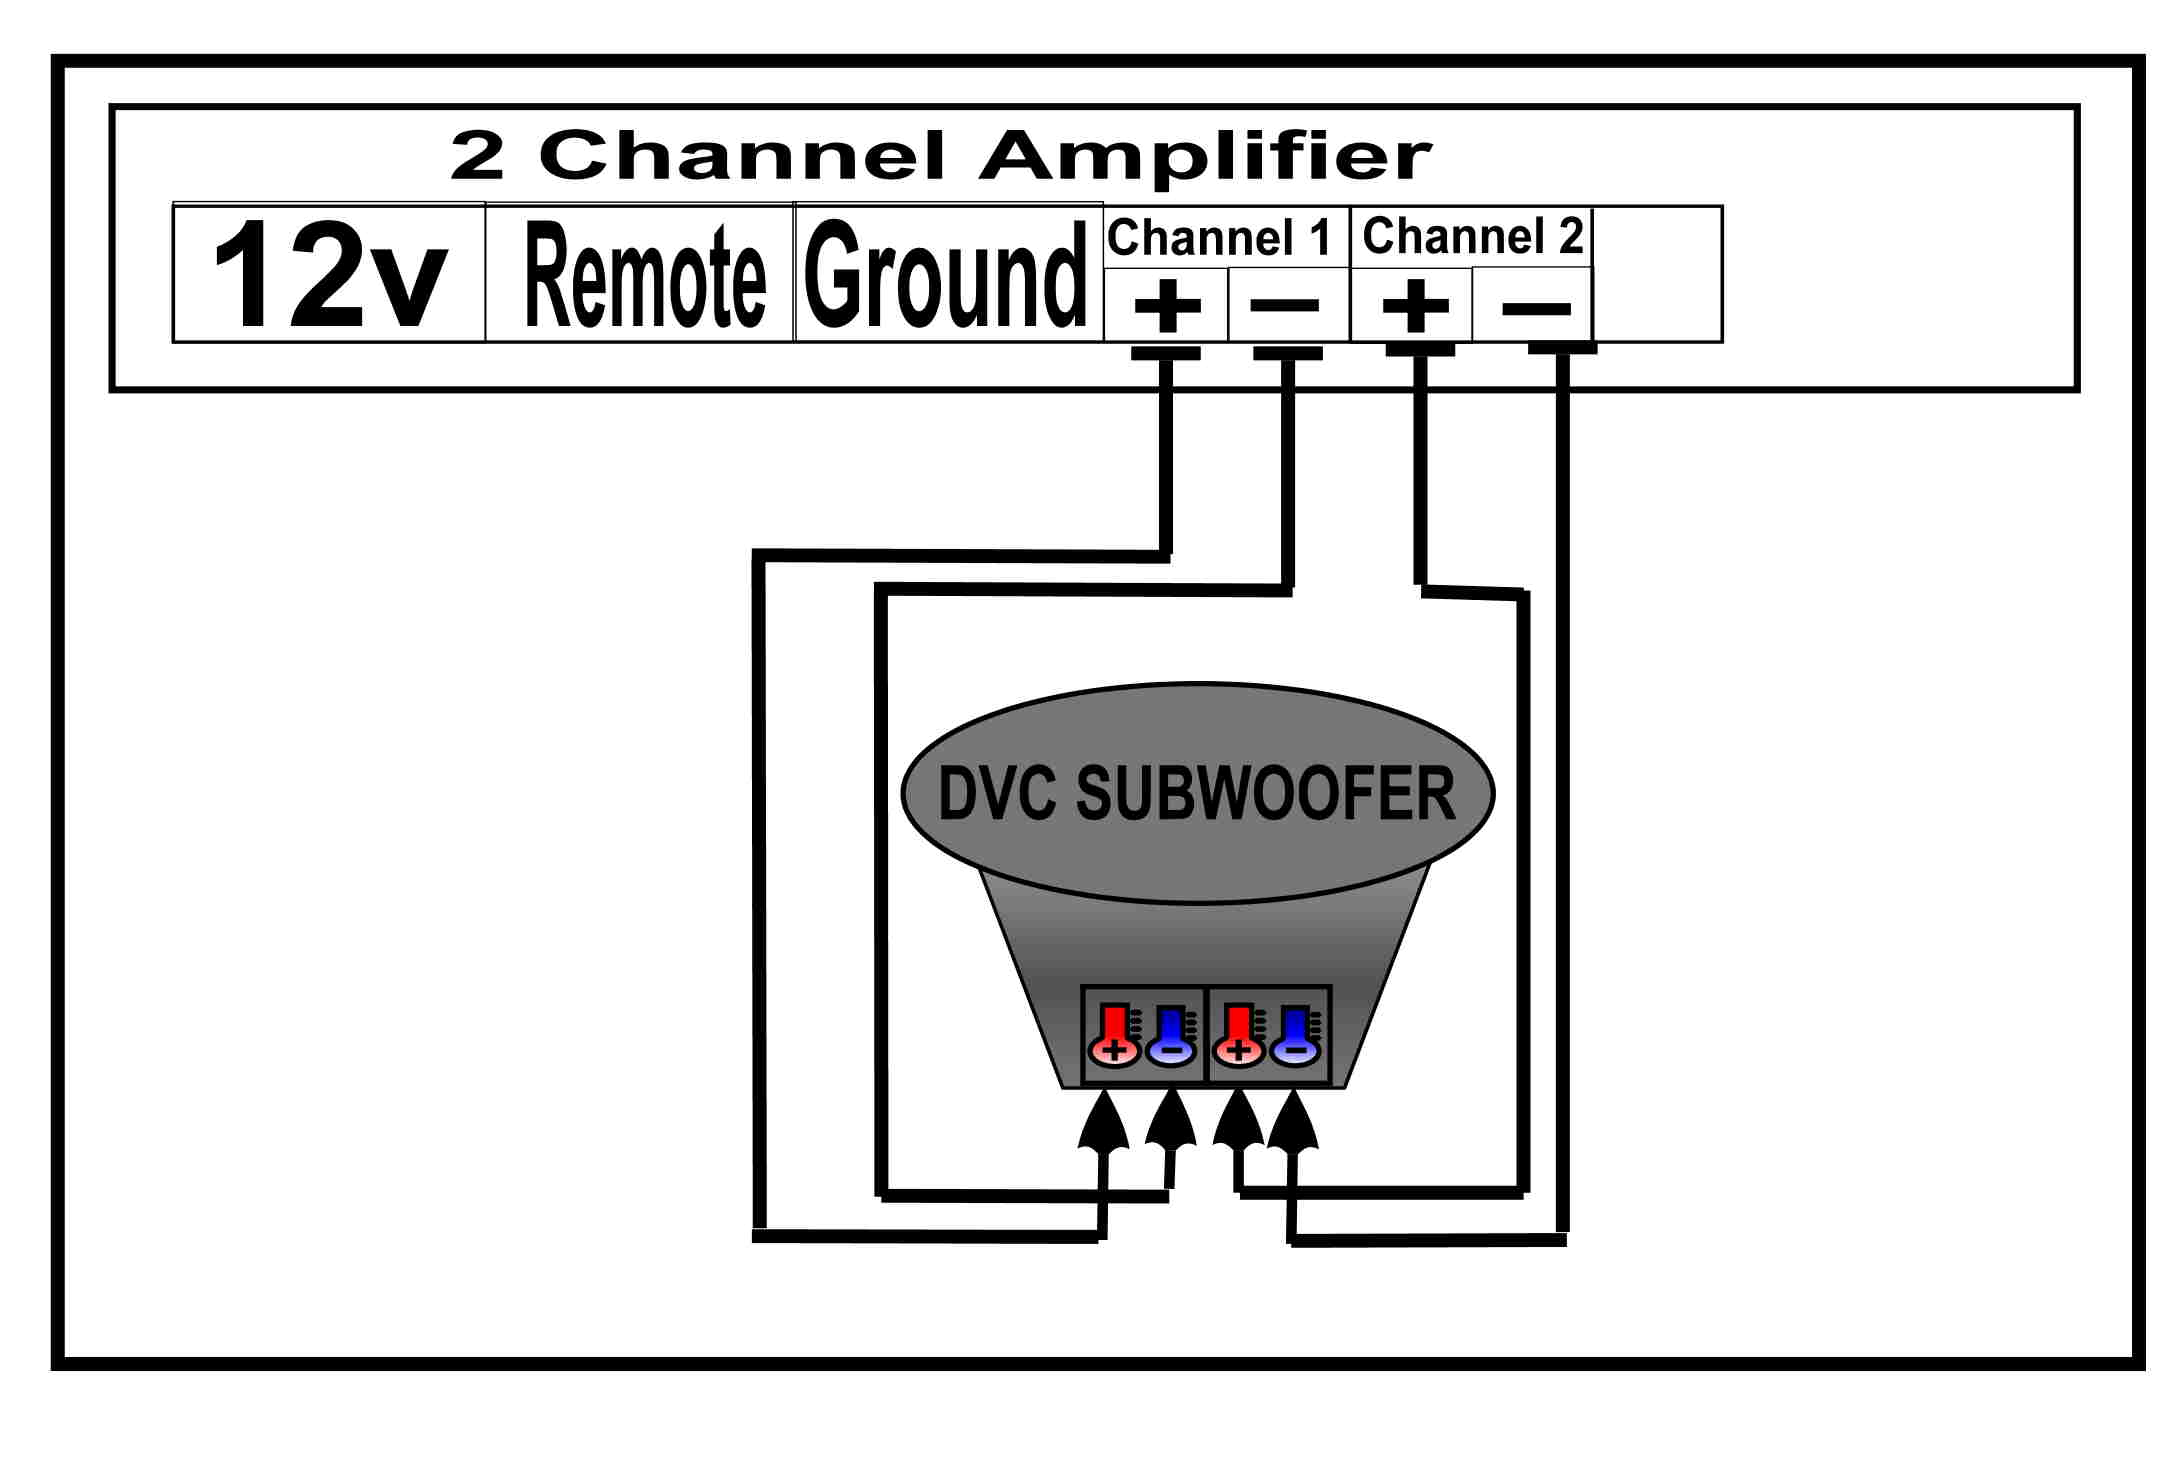 DVC to 2 Channel Amplifier help with wiring my audiobahn aw 1200 q and spl 460 phantom amplifier audiobahn aw1200q wiring diagram at alyssarenee.co